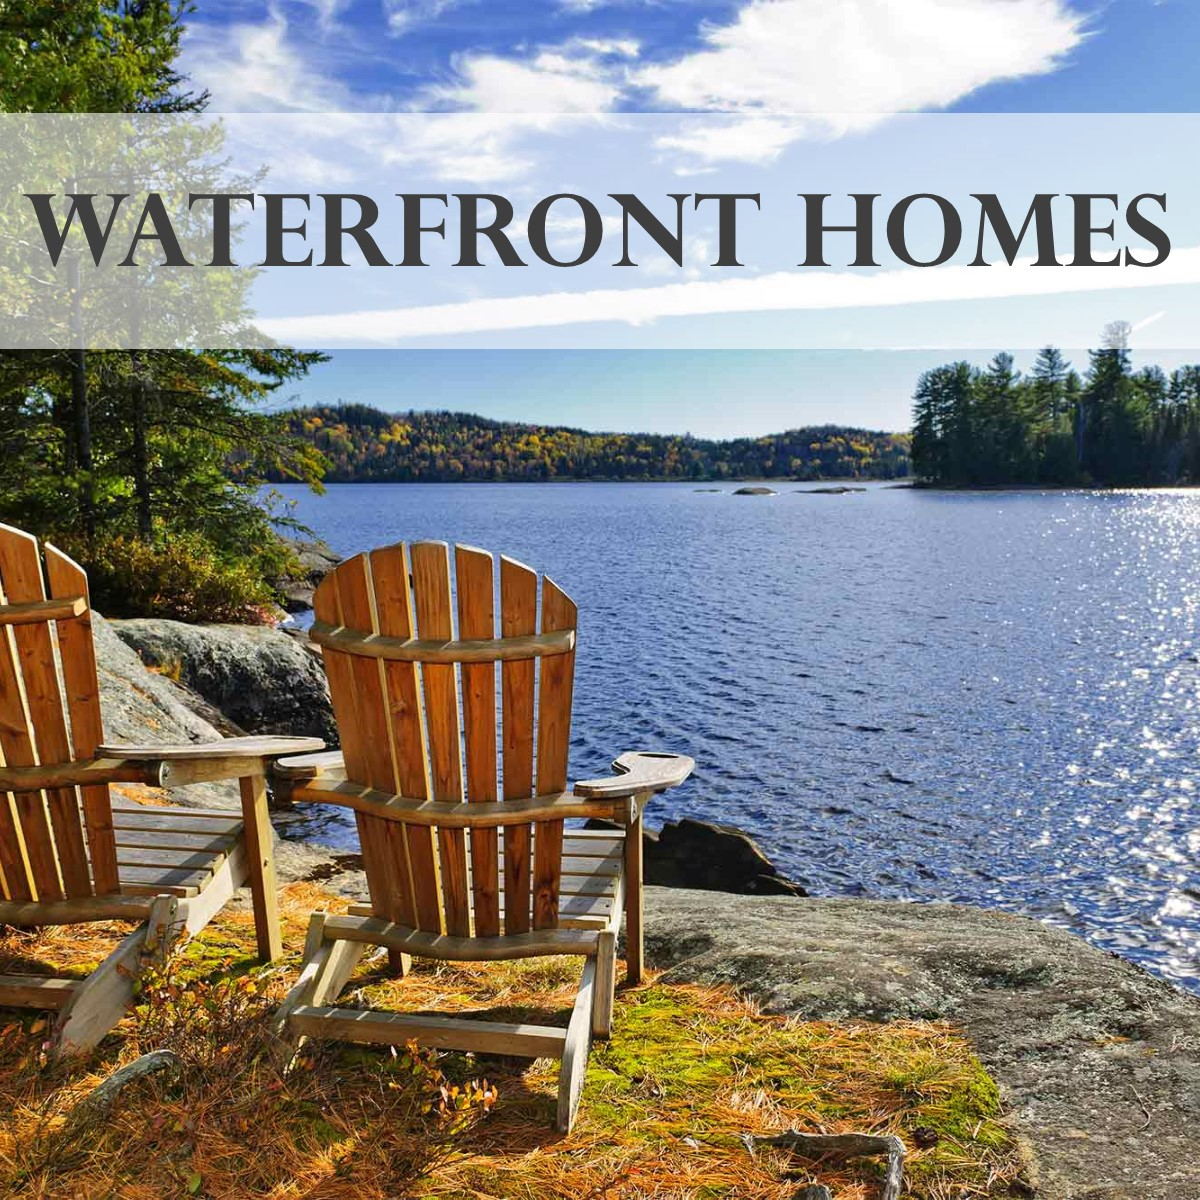 Maine Water front Homes and Camps - real estate leader, maine homes for sale, maine real estate, maine realtors, fontaine family